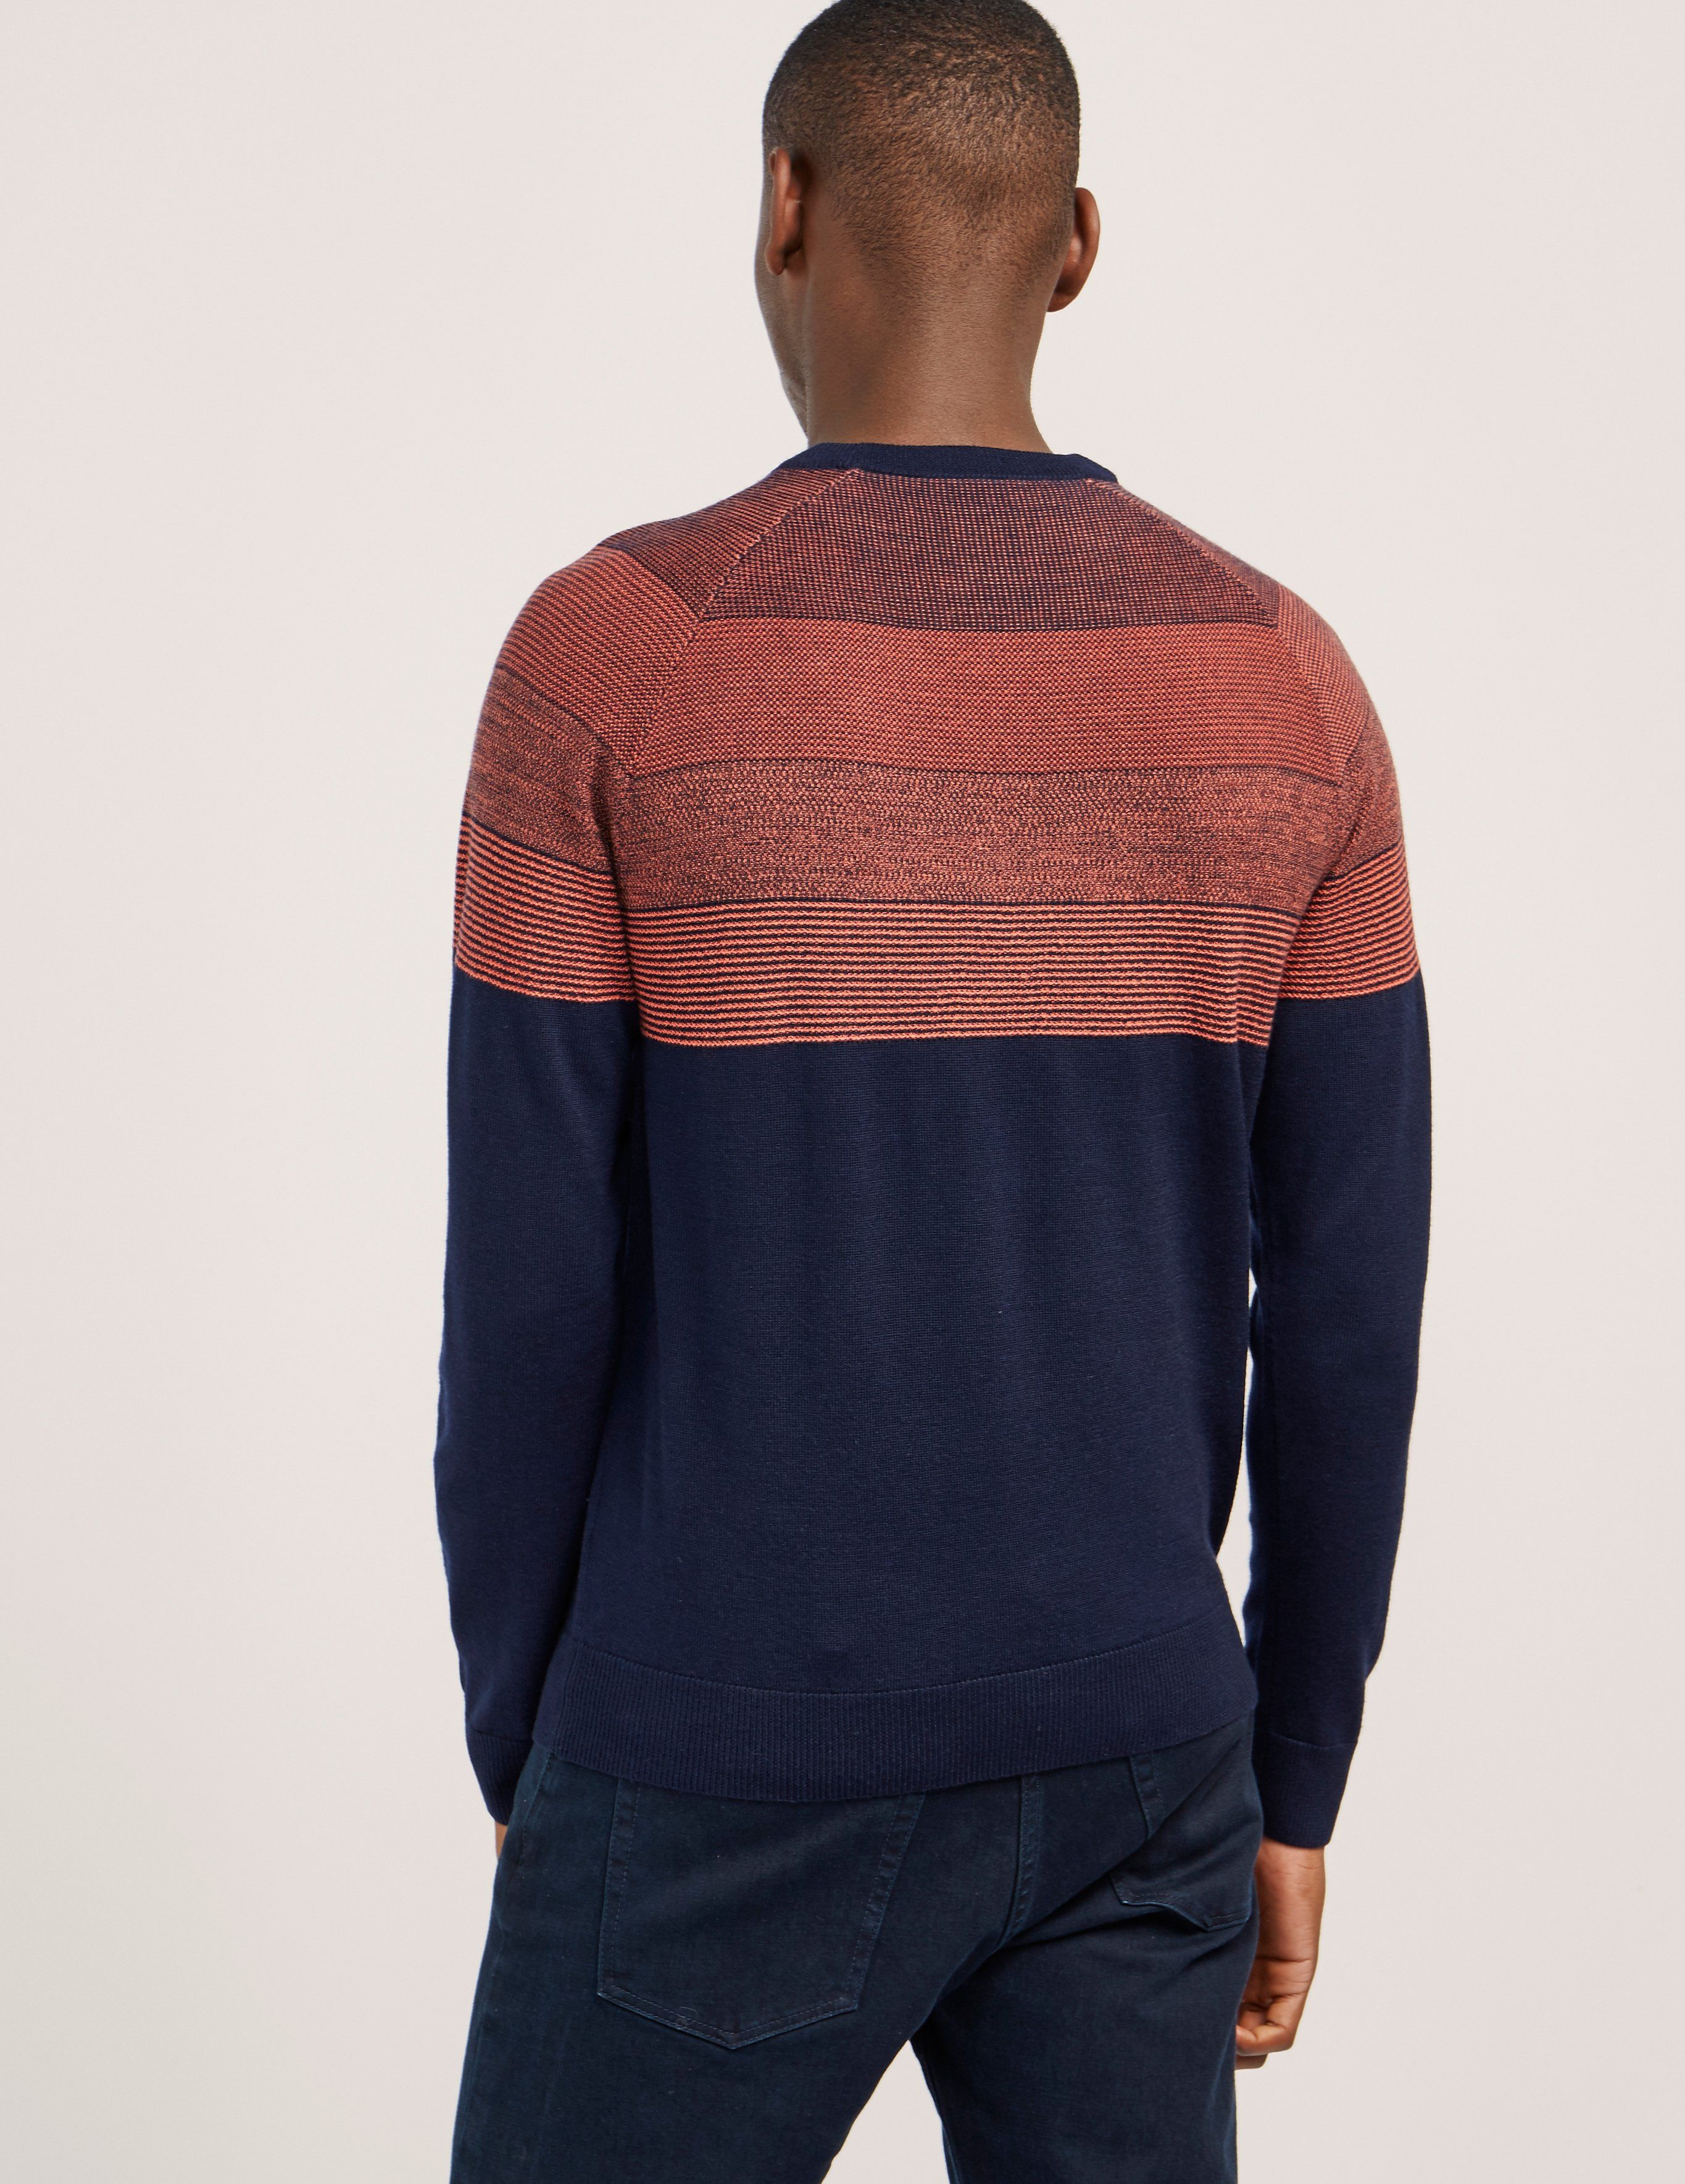 Paul Smith Contrast Long Sleeve Knitted Jumper